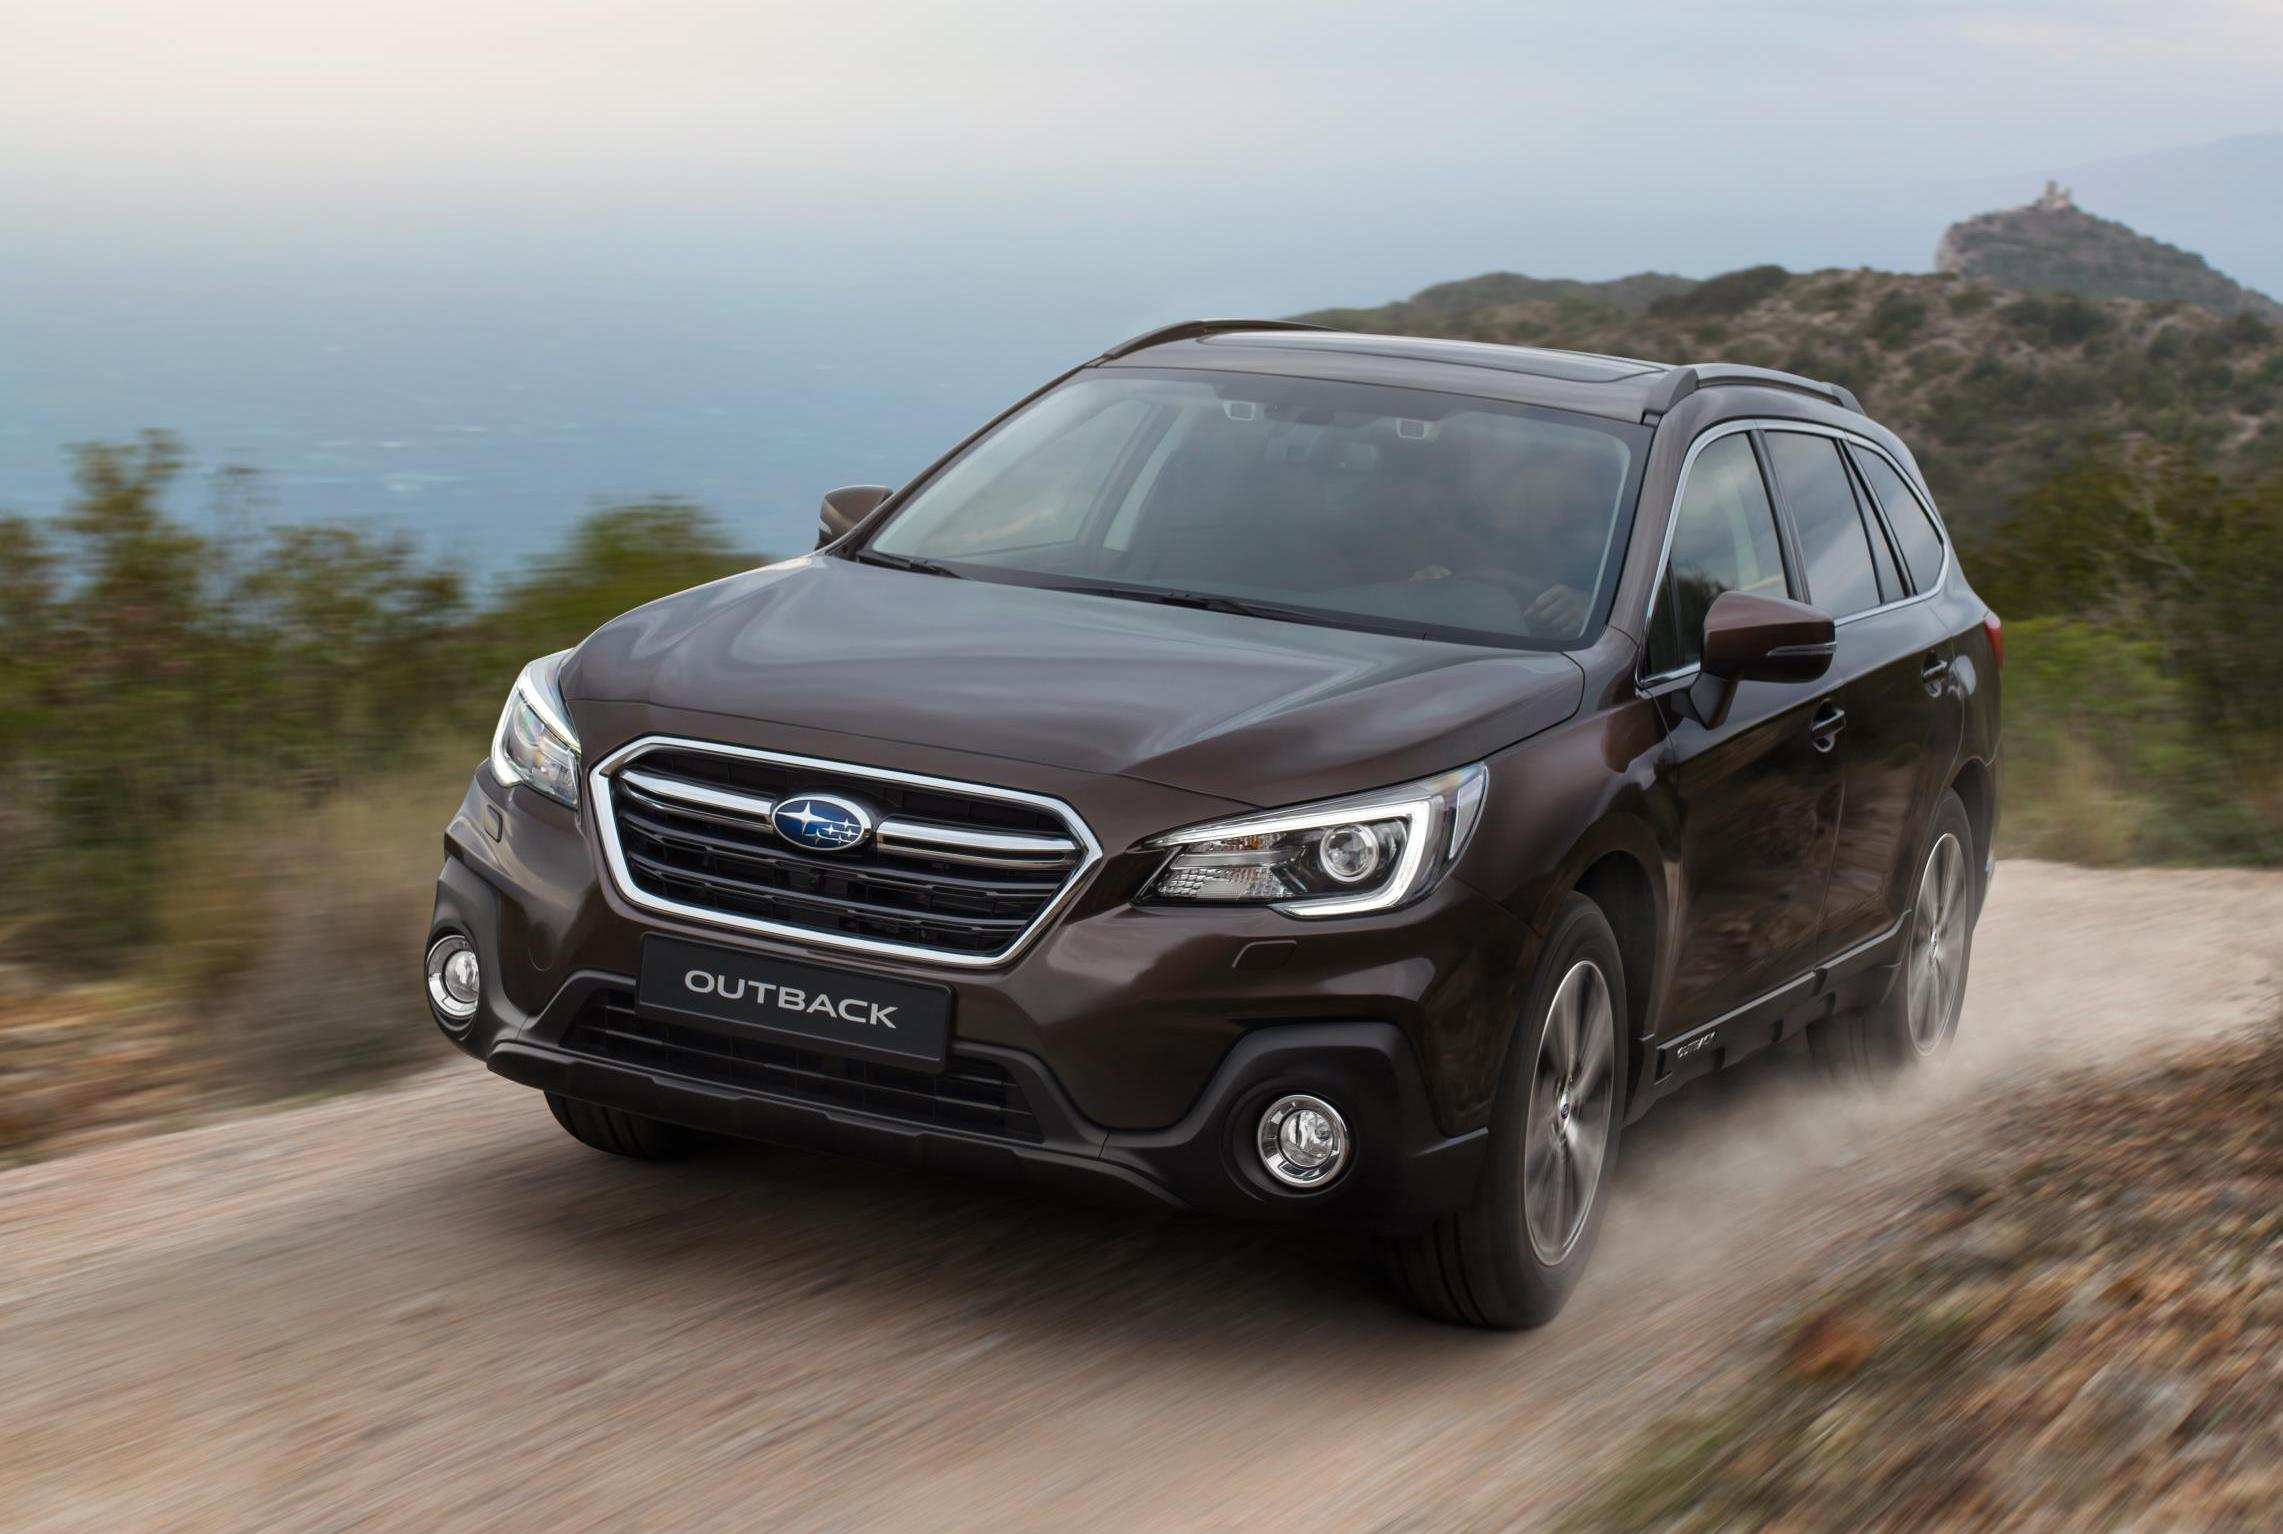 79 All New 2020 Subaru Liberty Price Design And Review